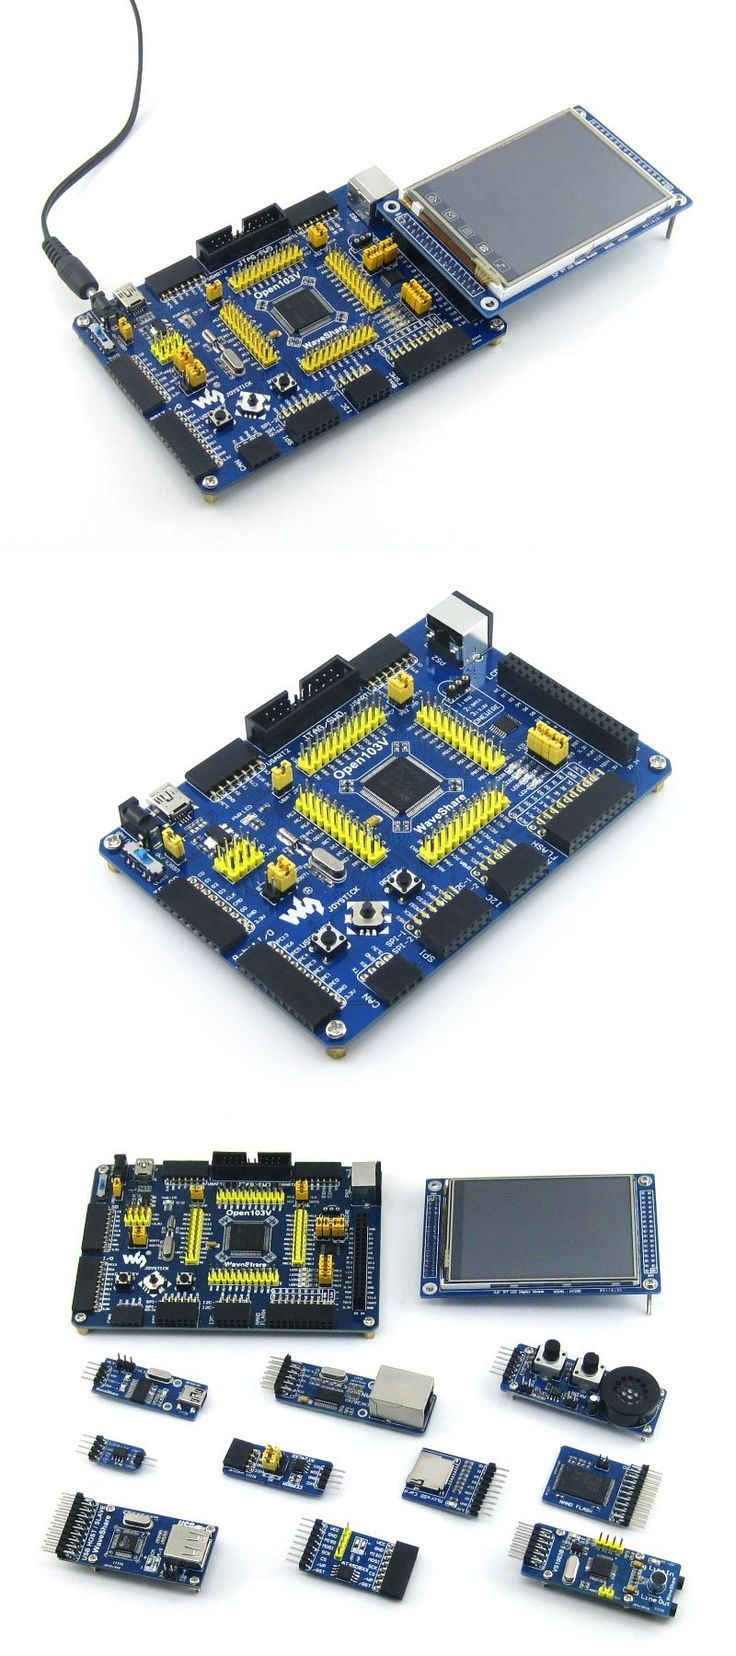 STM32 Board STM32F103VET6 STM32F103 ARM Cortex-M3 STM32 Development Board +10pcs Accessory Modules=Open103V Package B